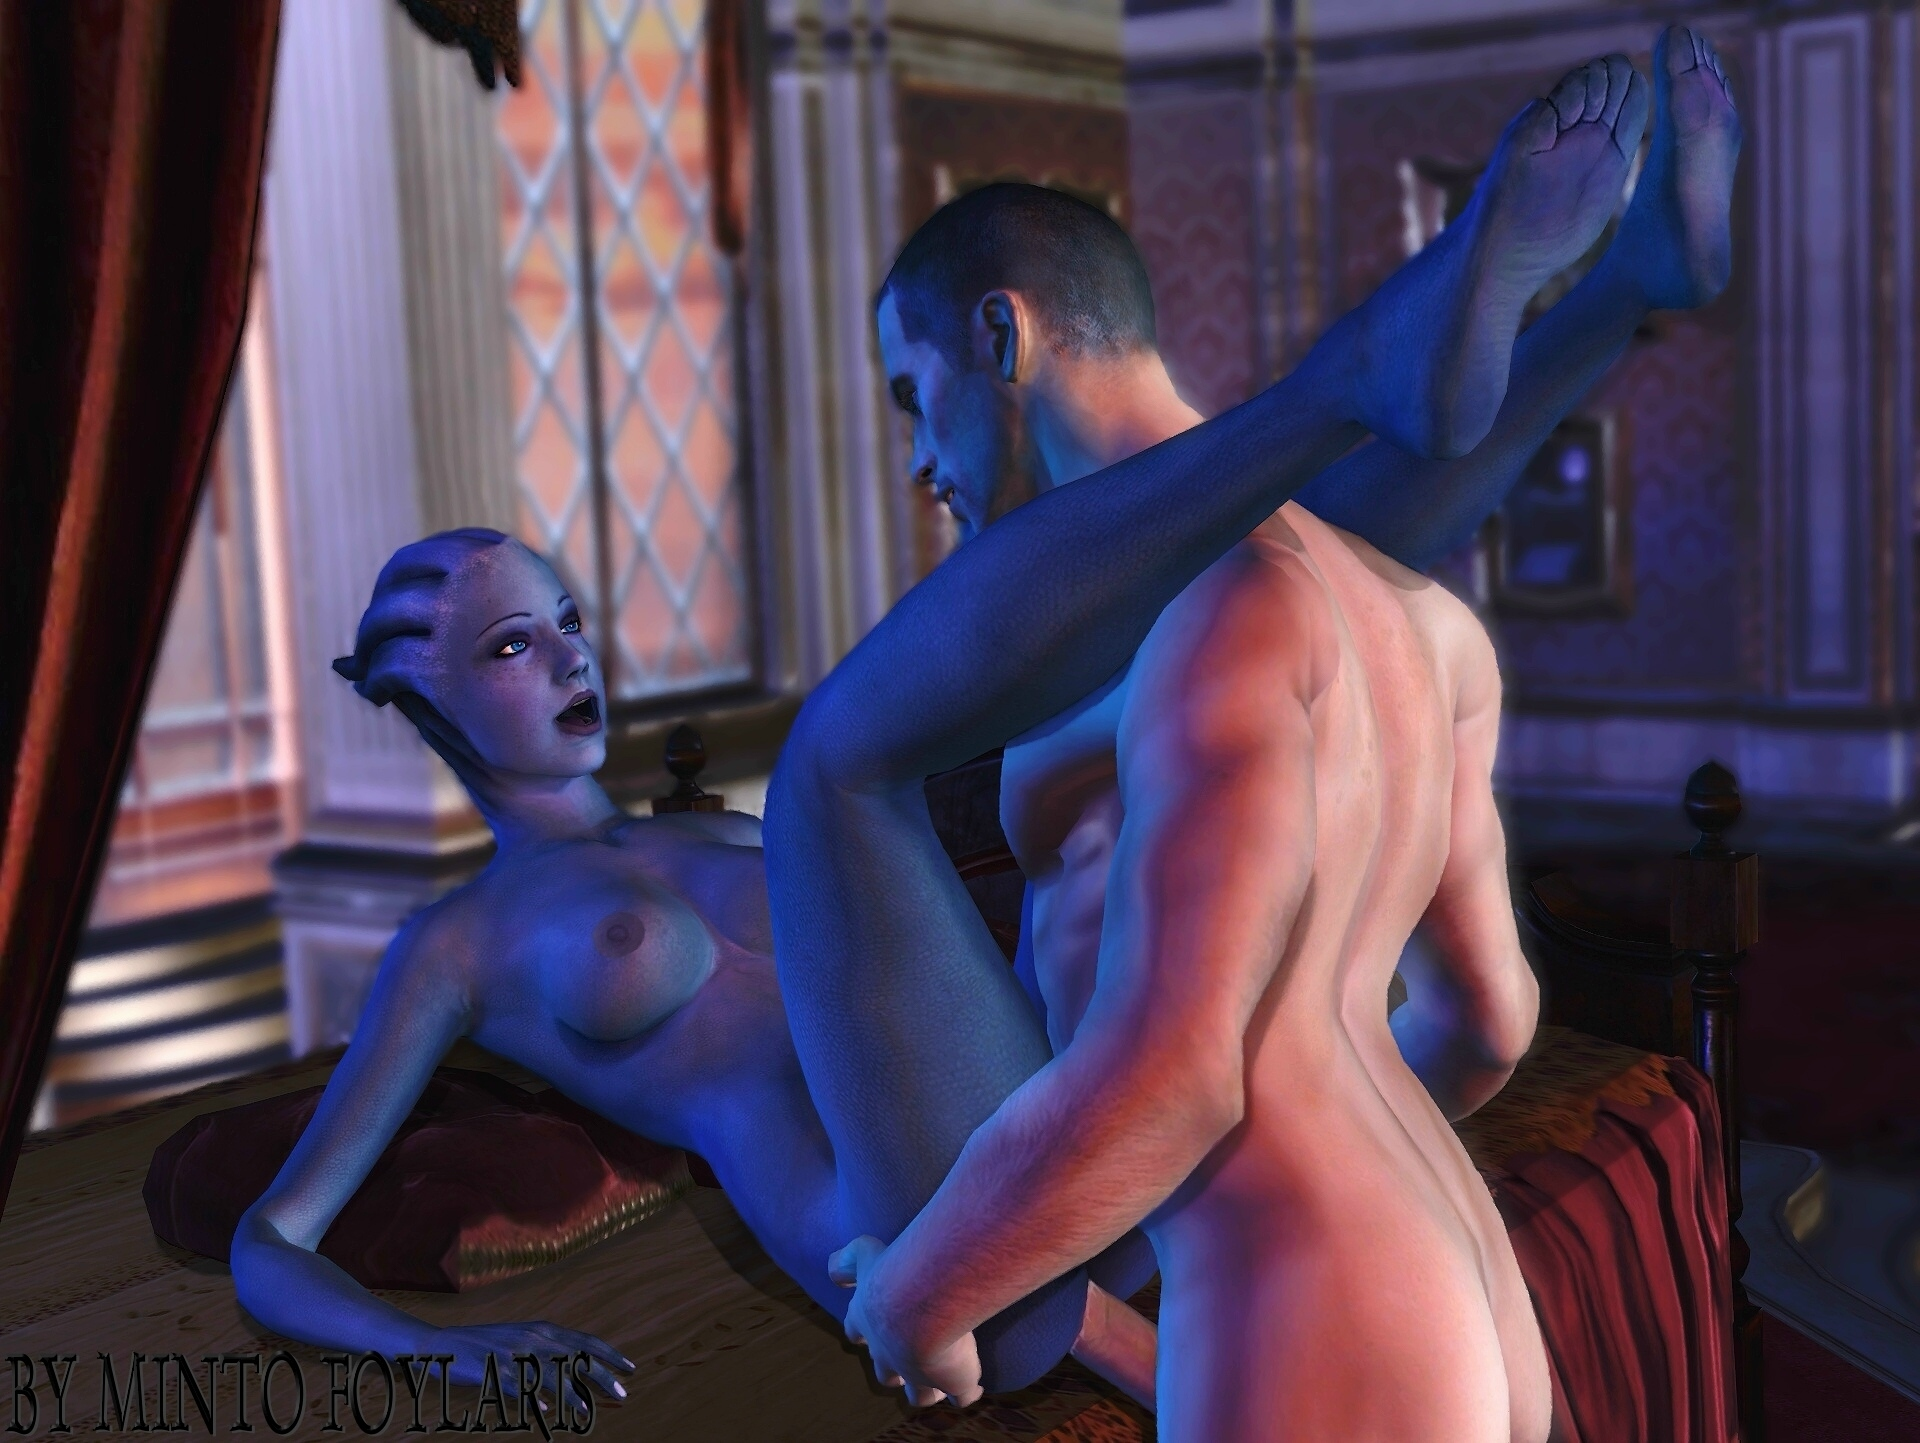 Mass effect porn shrek erotic slave